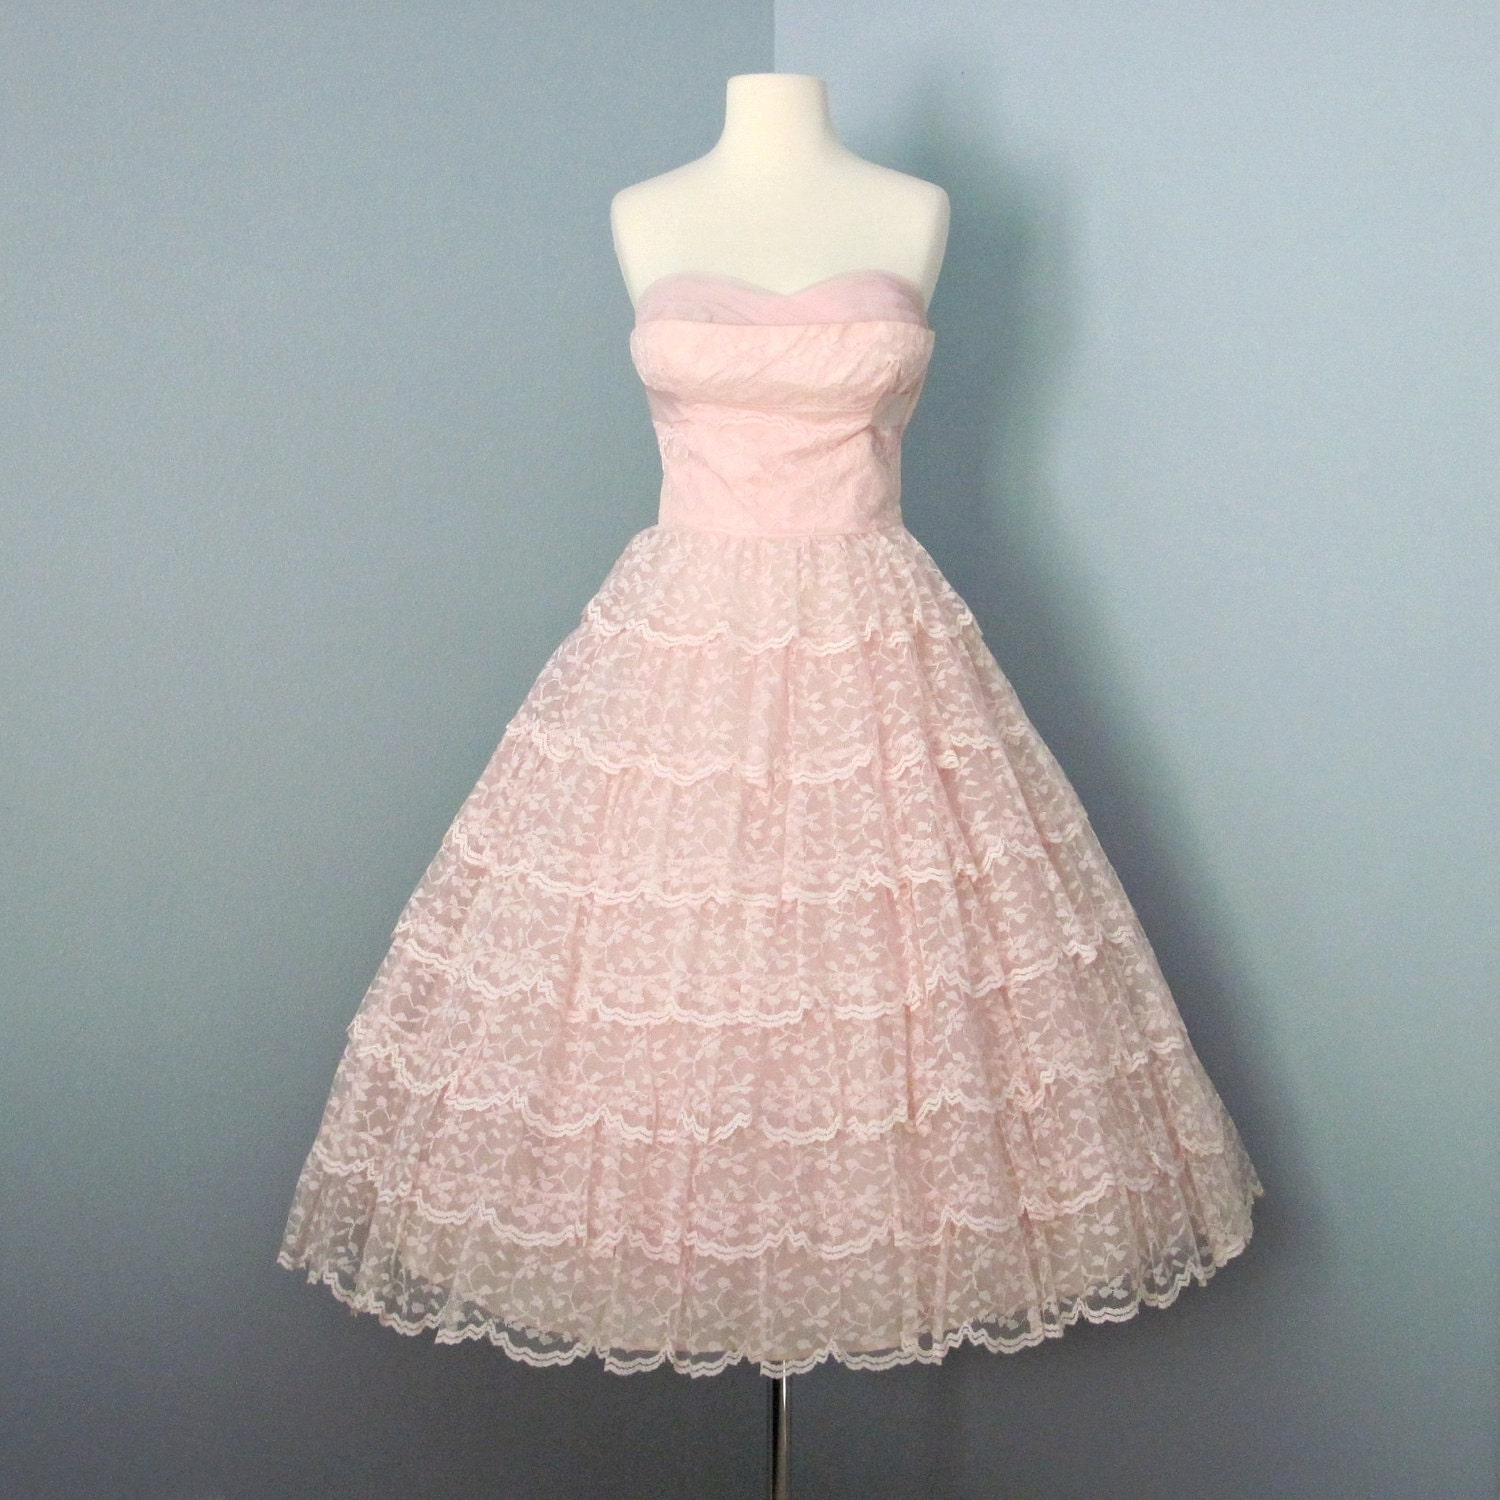 1950s prom dress pale pink vintage lace tulle wedding by